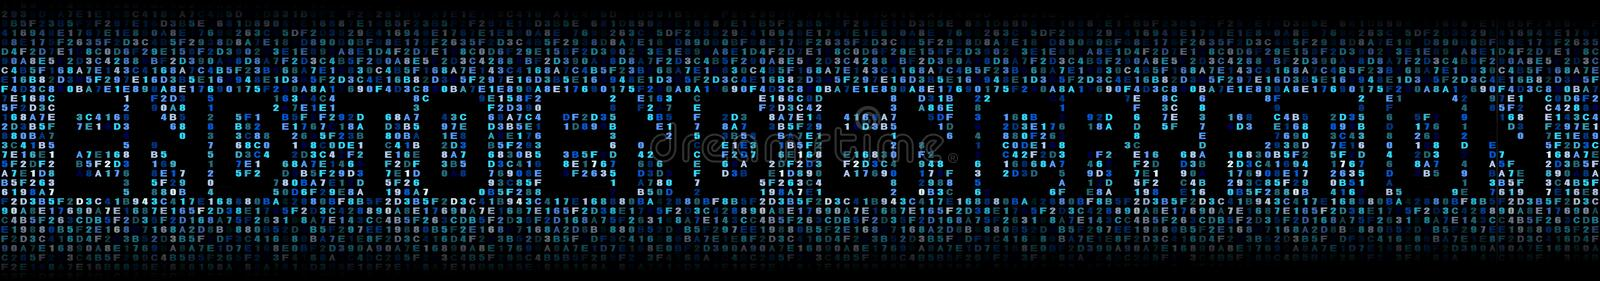 End to end encryption text on hex illustration stock photo